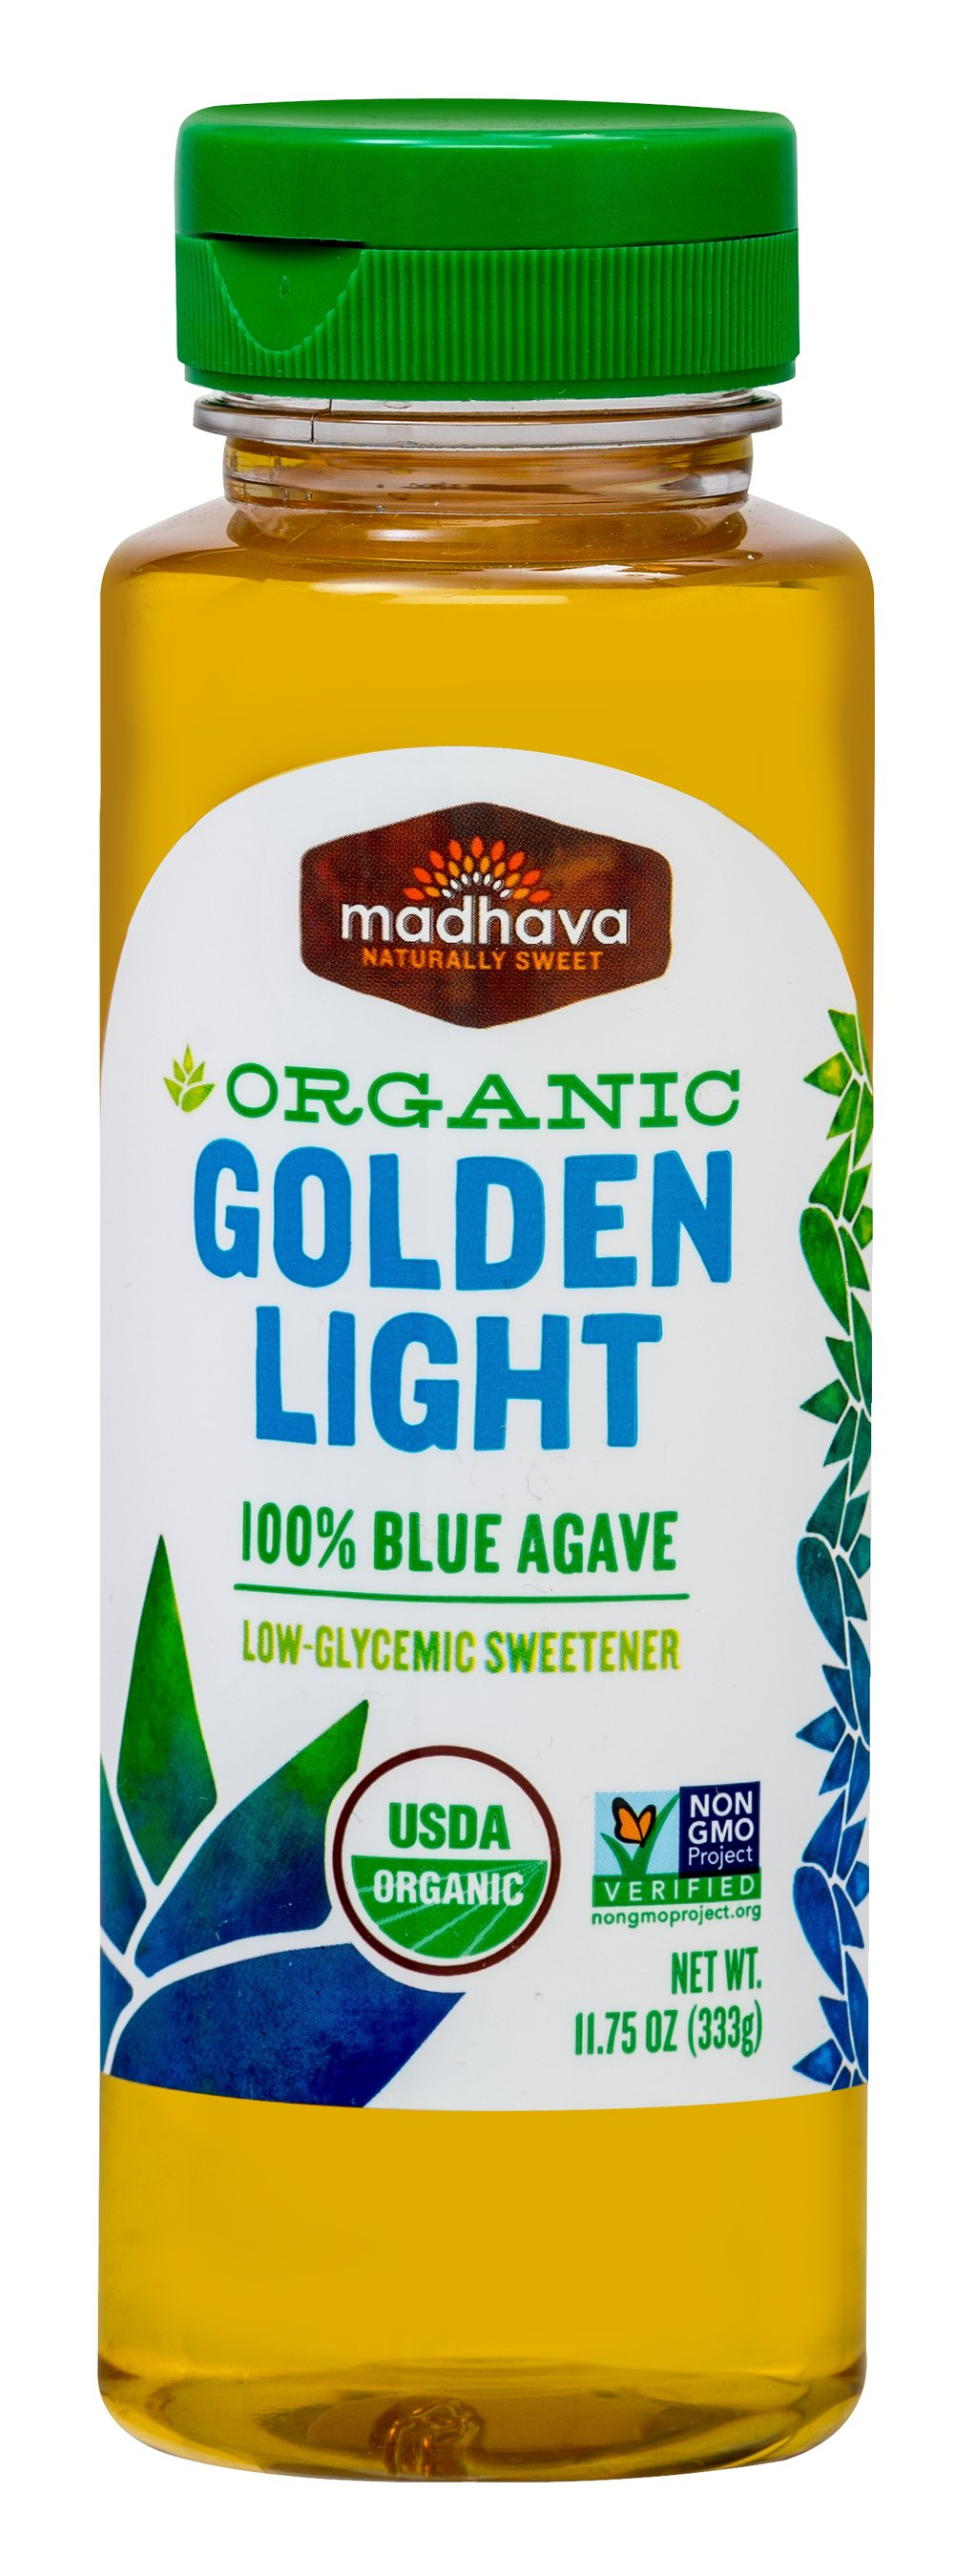 Organic Light Agave Nectar <p><strong>From the Manufacturer's Label: </strong></p><p>100% Pure Agave Nectar</p><p>Madhava's Agave Nectar has many qualities that make it ideal for all of your sweetening needs. Consistently delicious and mild in flavor. Dissolves quickly, even in cold food or drinks.  Best of all, it simply tastes great and enhances the flavors of any food it sweetens.  Enjoy!</p> 11.75 oz Bottle  $11.49